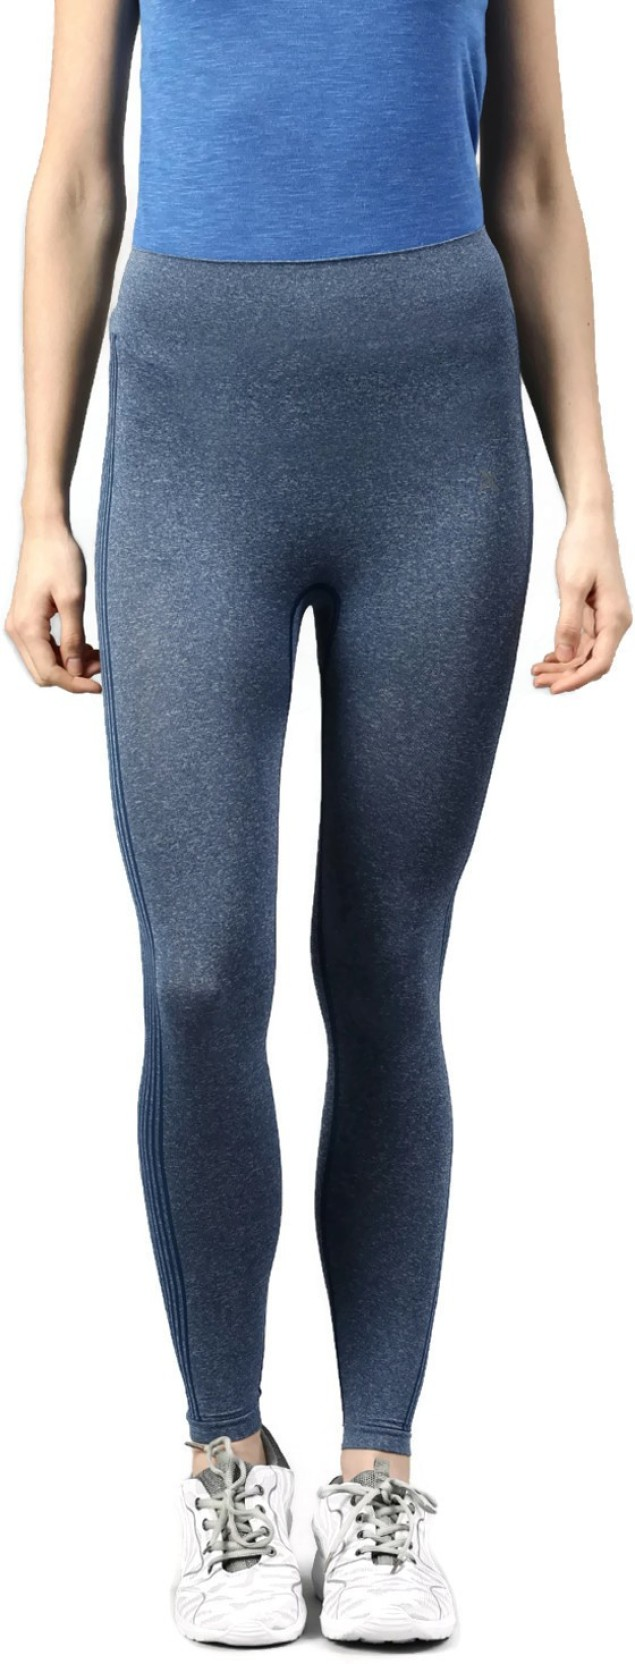 7069ed6642f0b HRX by Hrithik Roshan Solid Women's Blue Tights - Buy HRX by Hrithik ...